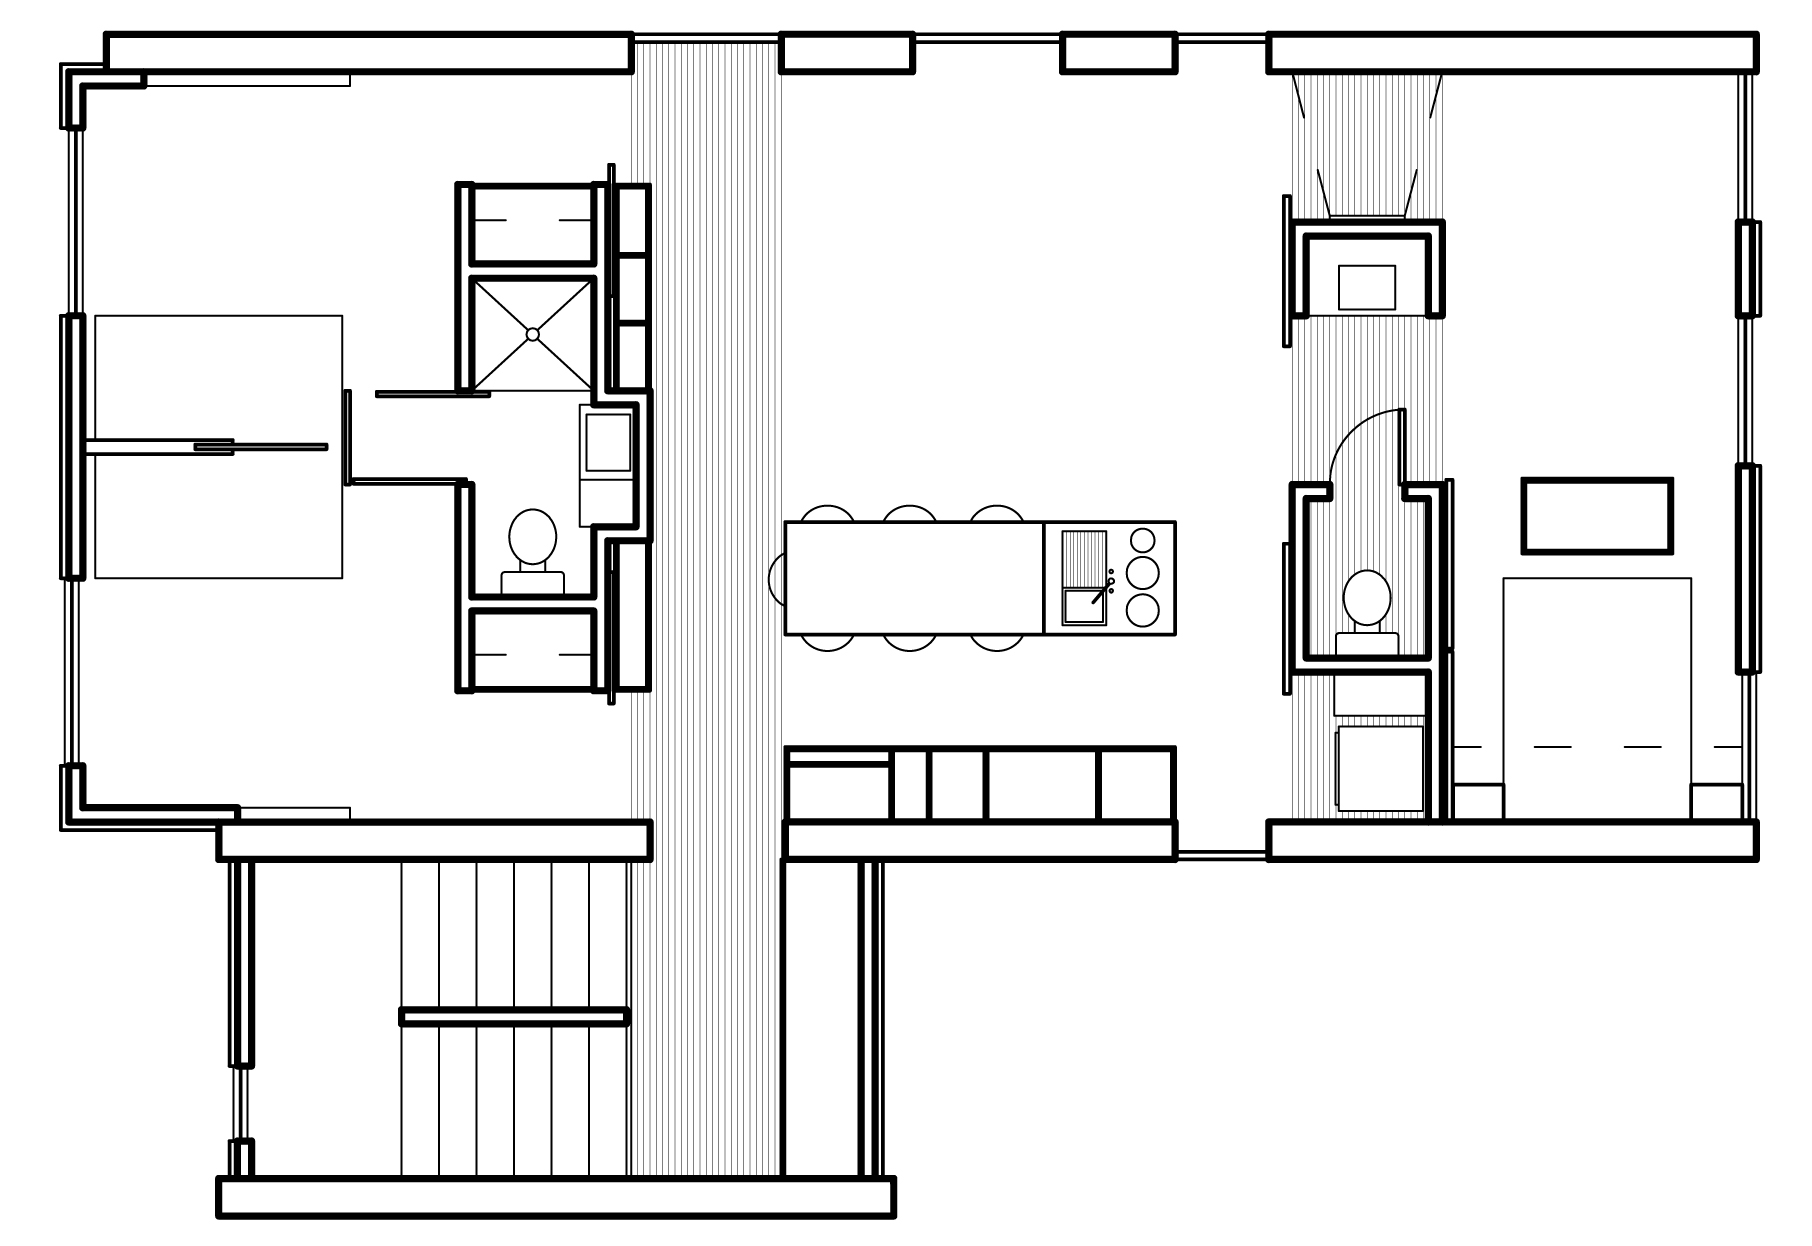 Modern house plans contemporary home designs floor plan 01 for Modern floor plans